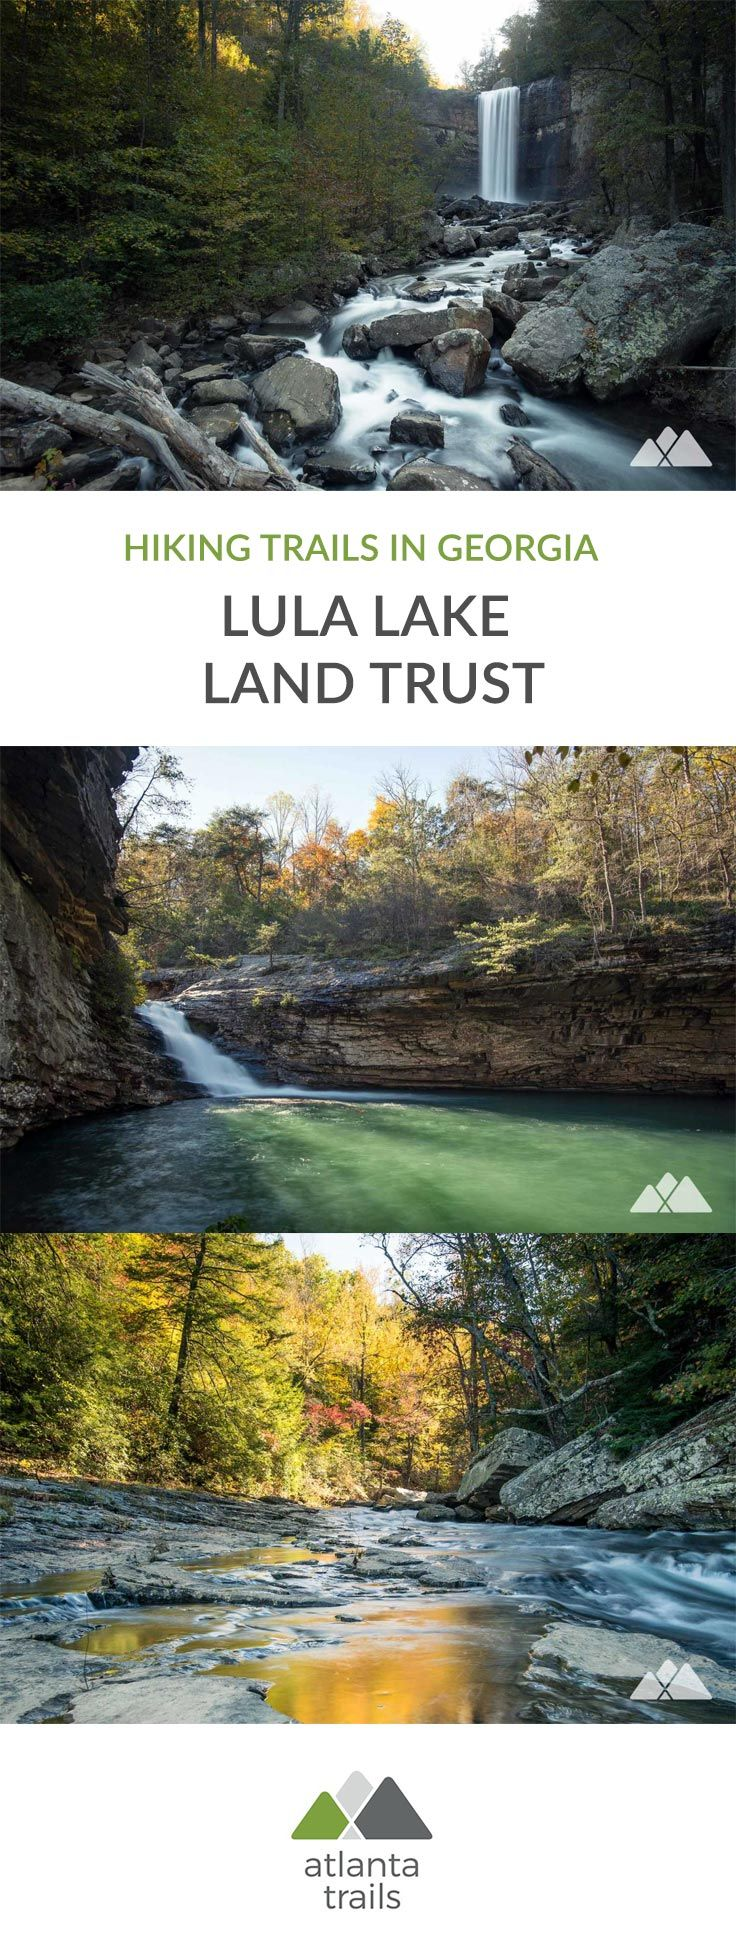 Hike several scenic trails in Lula Lake Land Trust to two tumbling waterfalls, the 120-foot freefall at Lula Falls, and a spectacular 20-foot waterfall into an emerald-hued lake. #hiking #atlanta #georgia #travel #outdoors #adventure